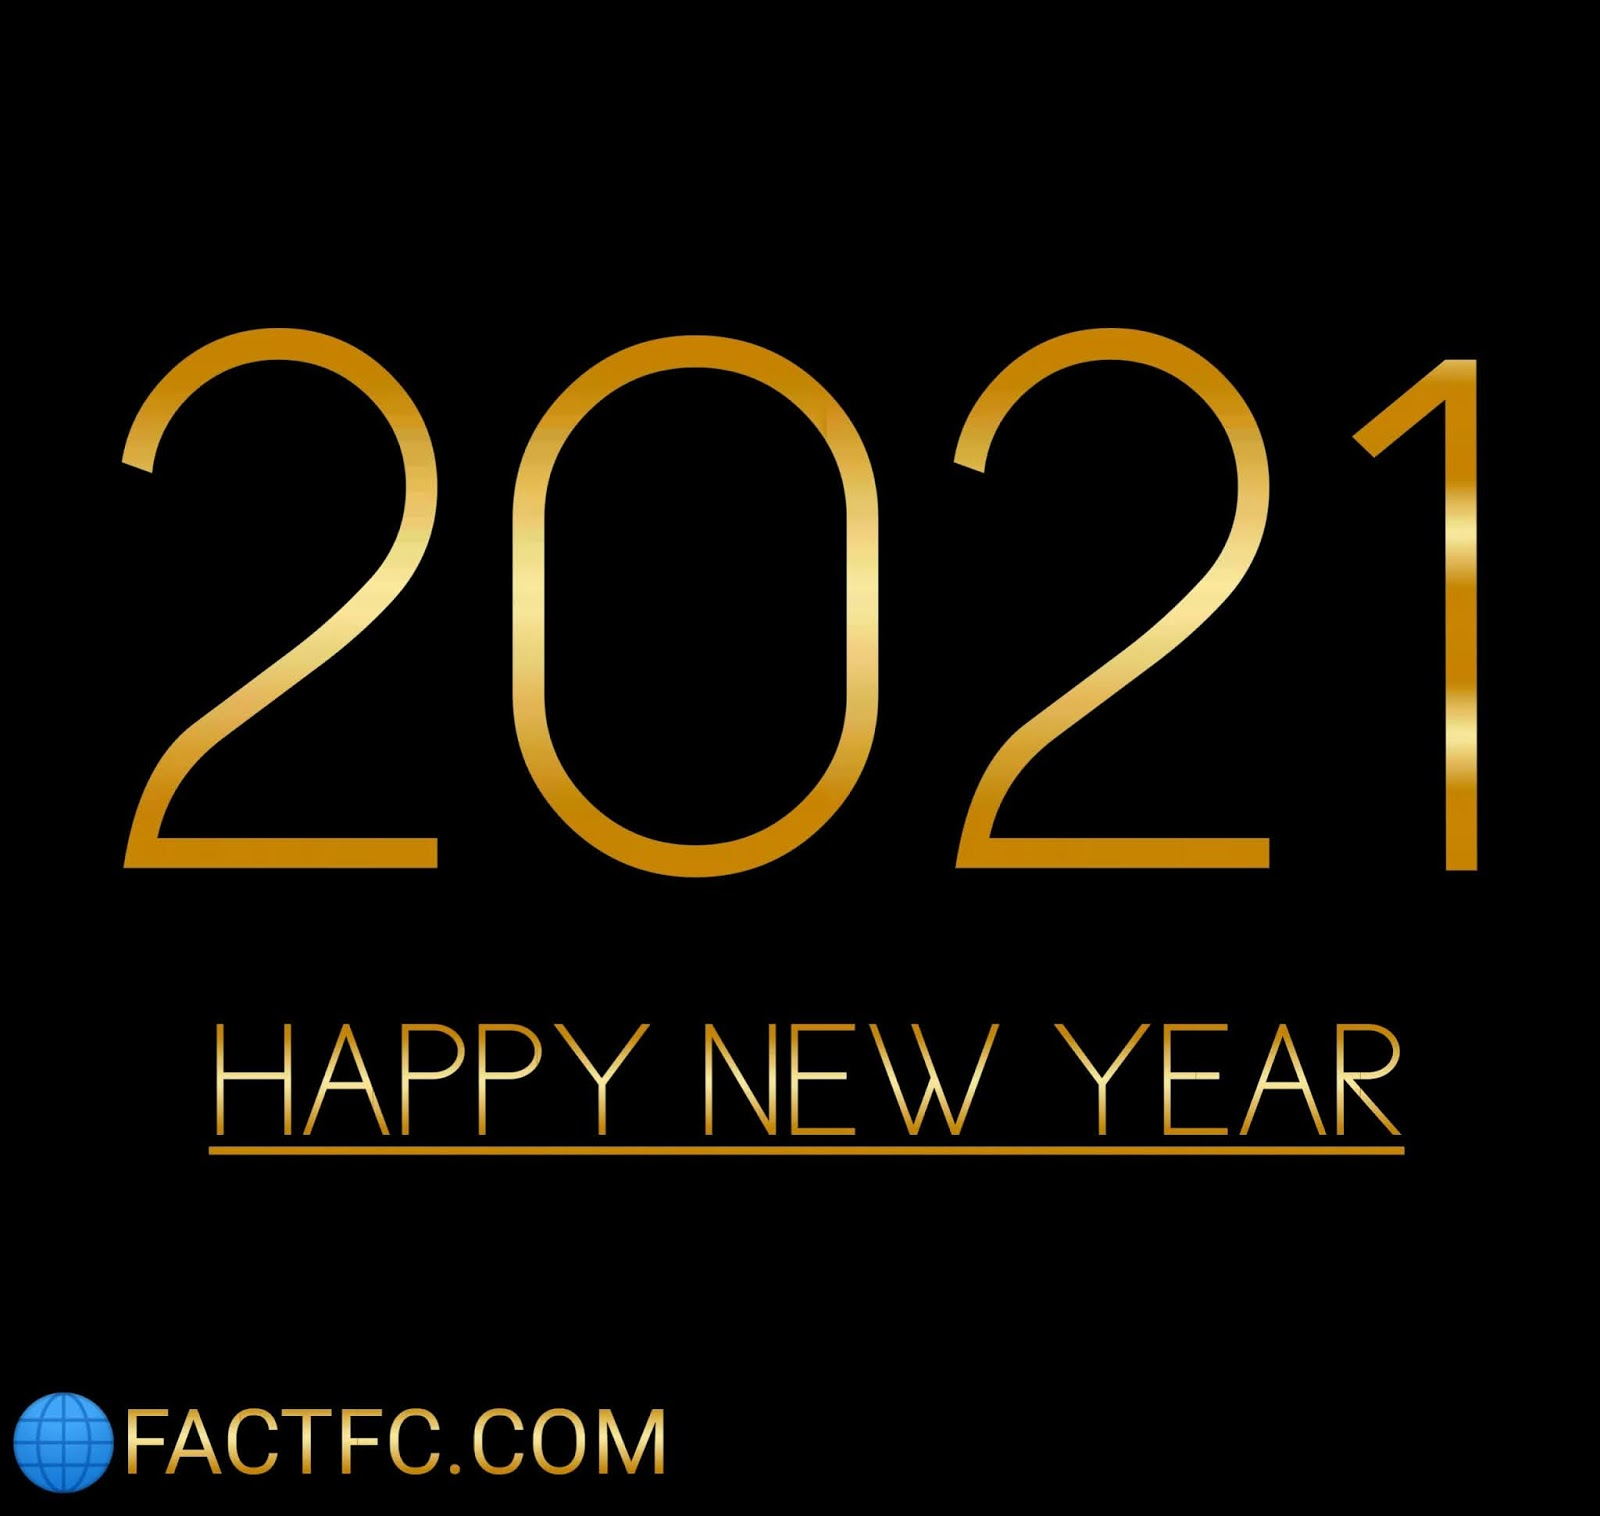 Happy New Year 2021 Images Wishes Greetings Quotes Sms Gifs Hd